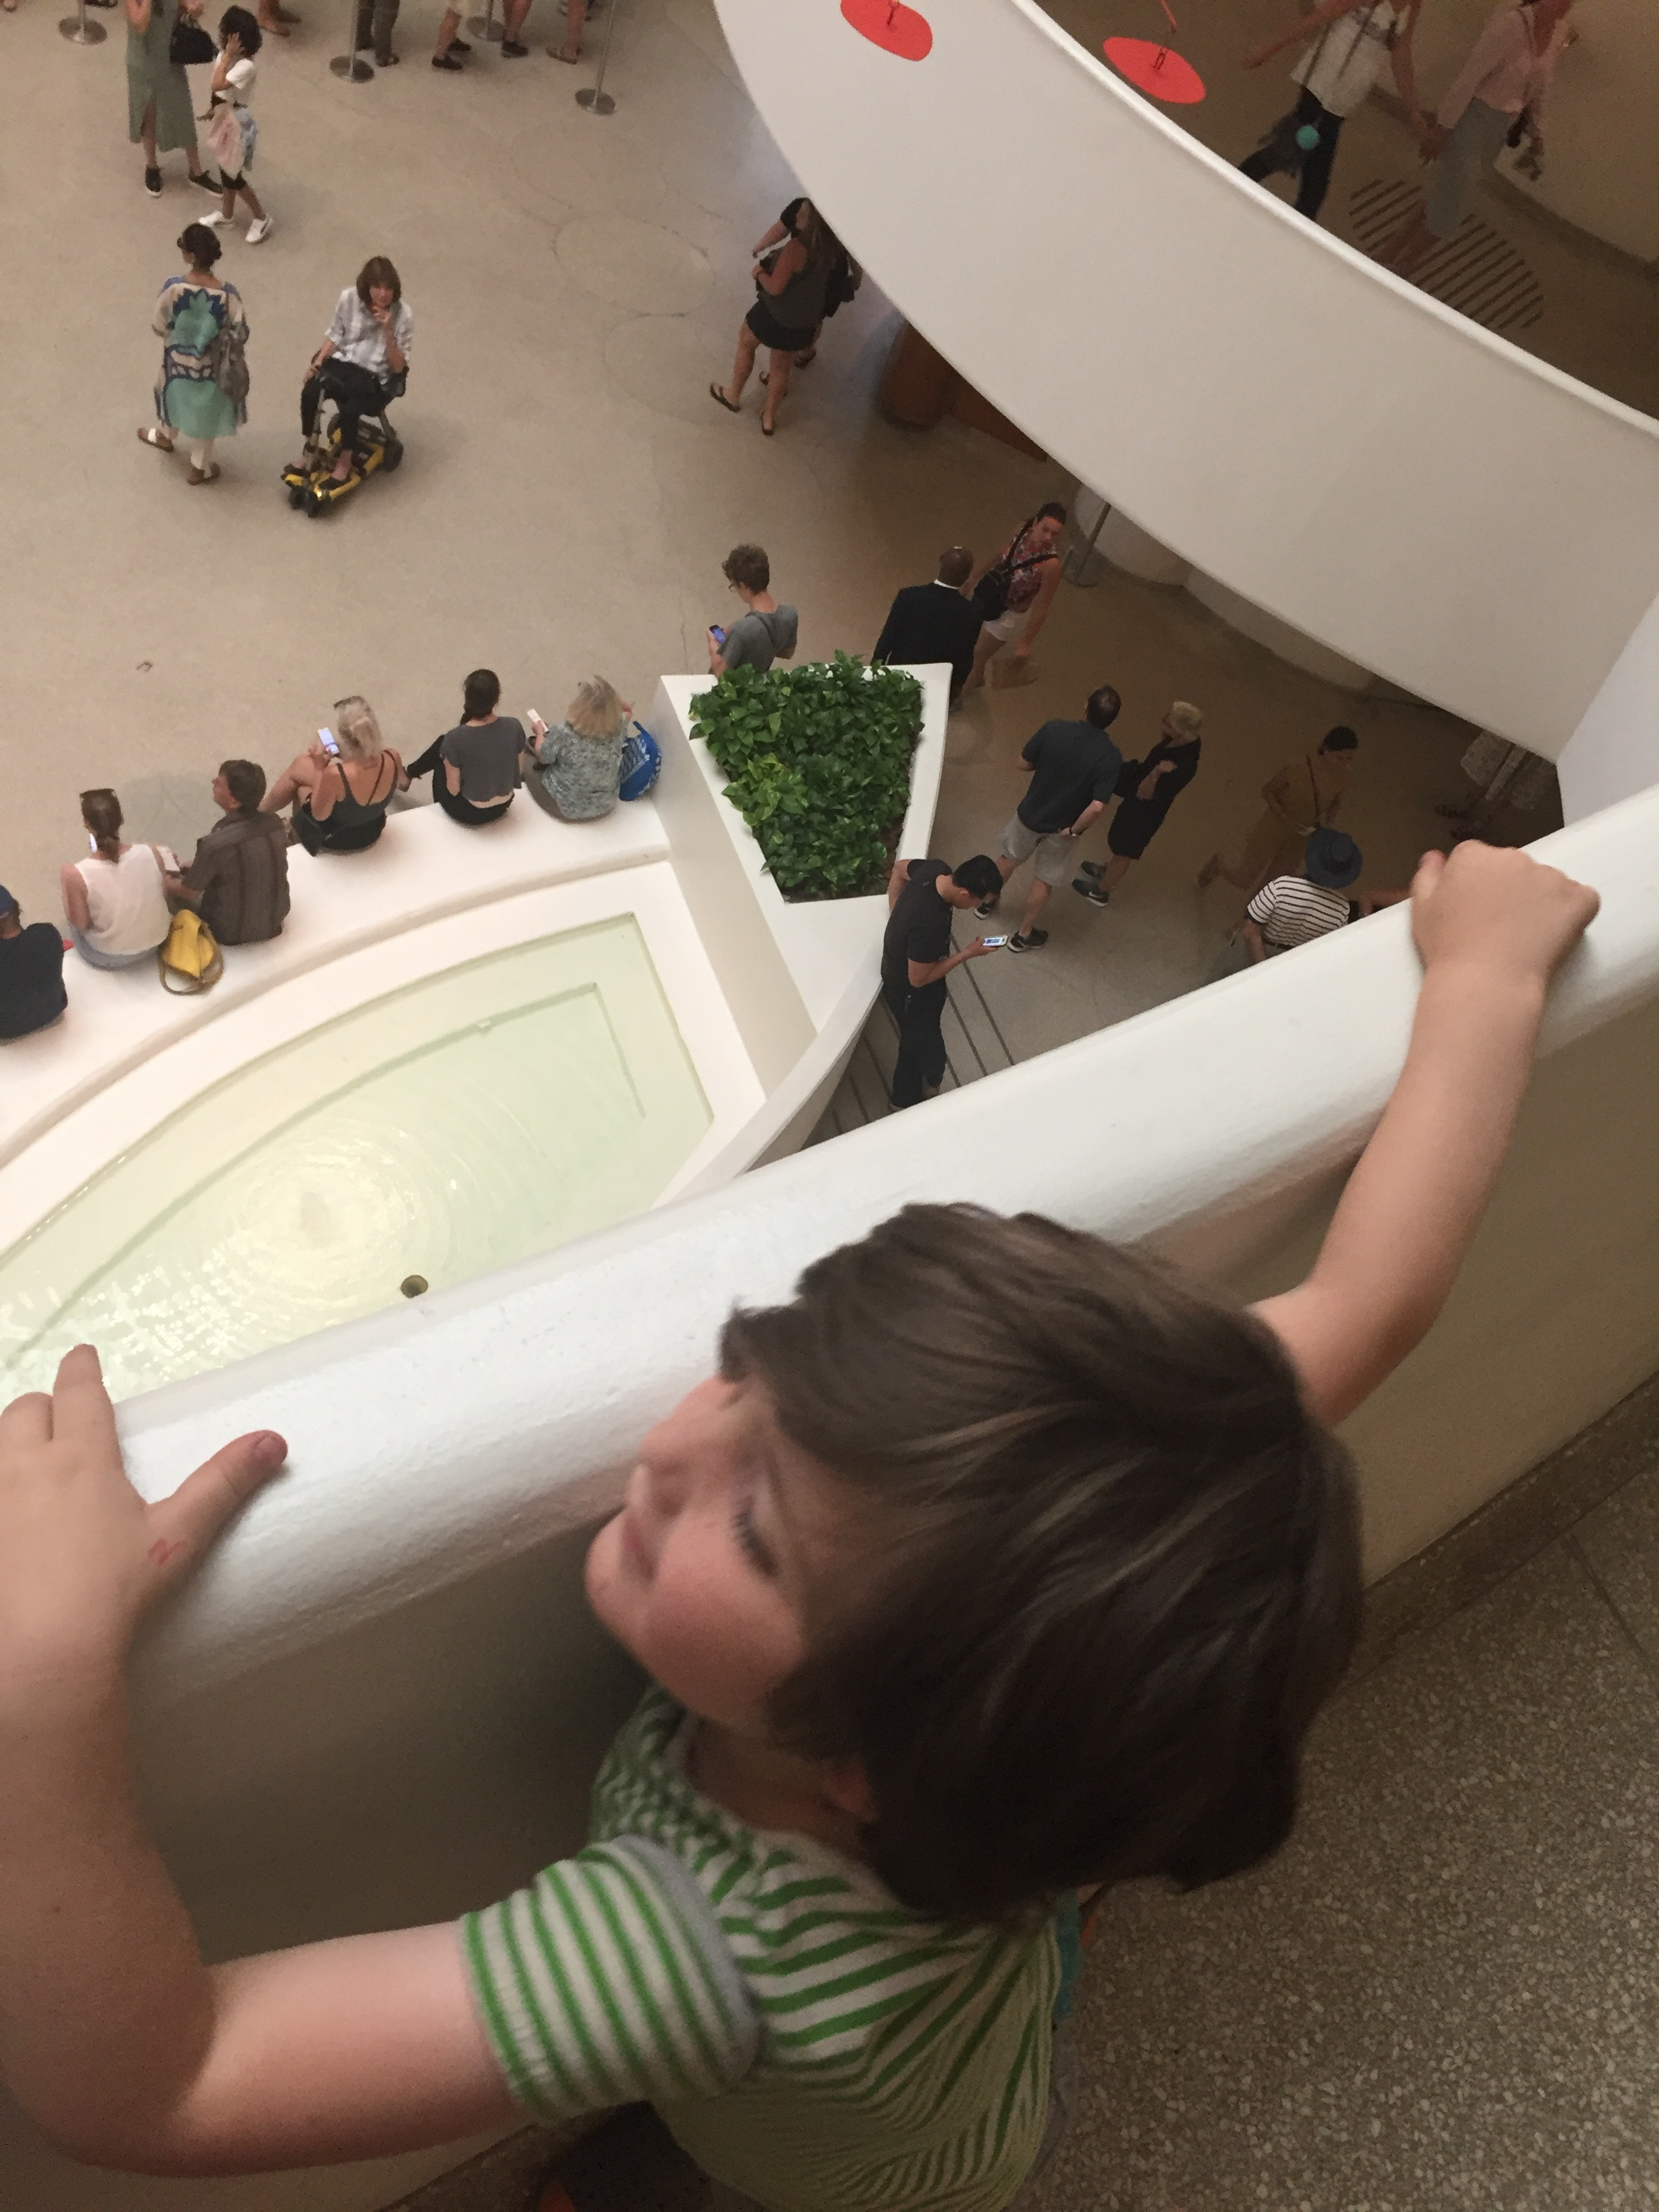 Lyric chose the eye pool at the base of the Guggenheim as what made him feel calm. Not sure if I ever noticed it was an eye before.